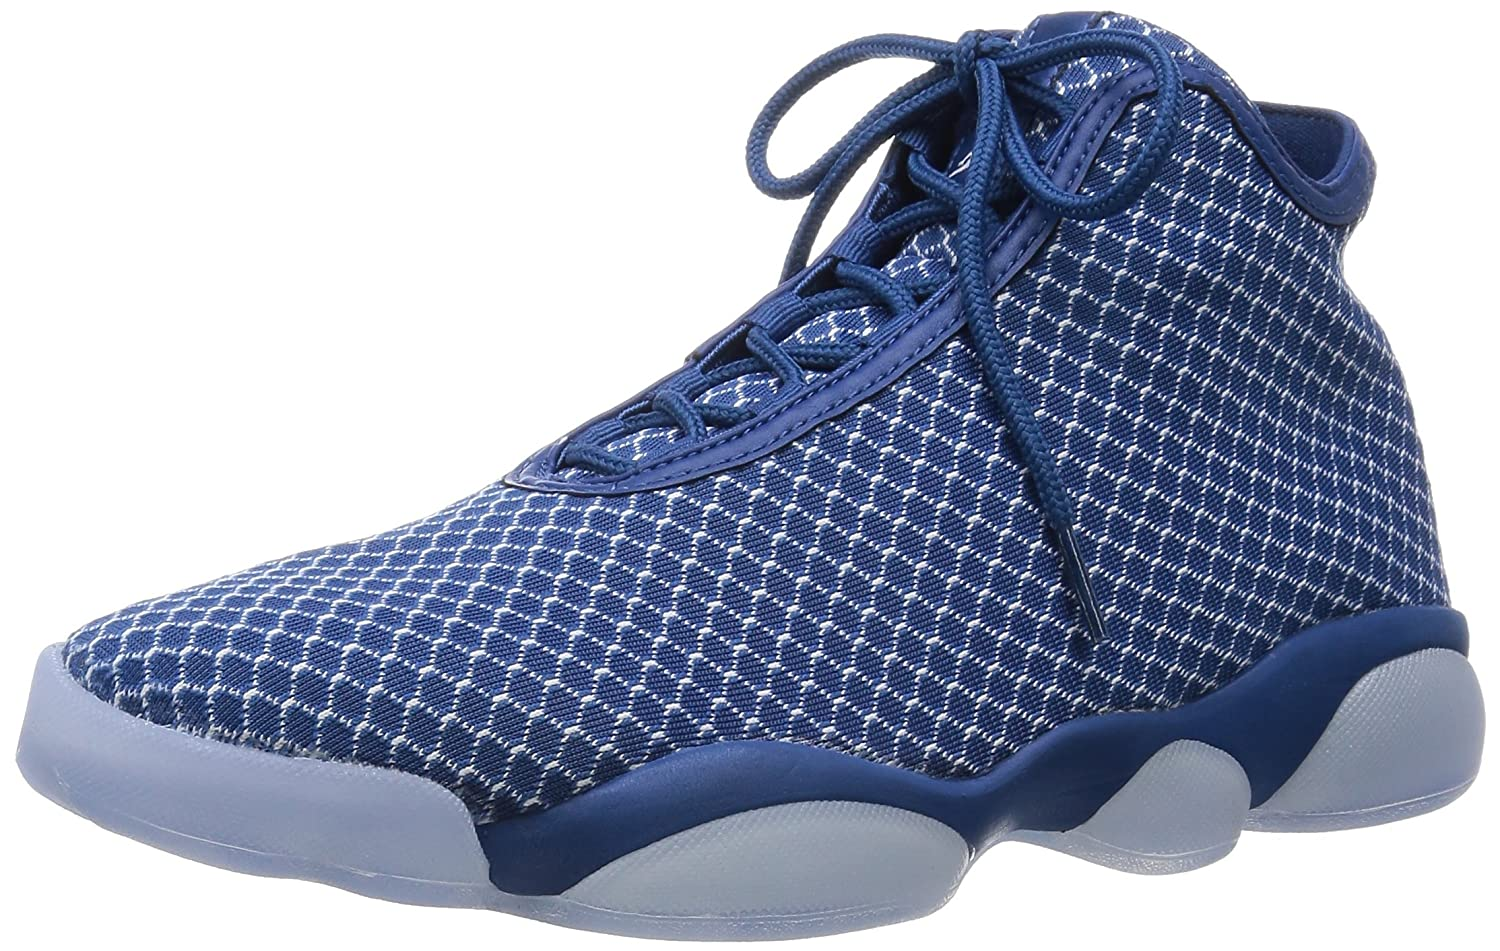 le dernier 0c0e4 c7c51 france jordan horizon blue came b6e41 00cd9